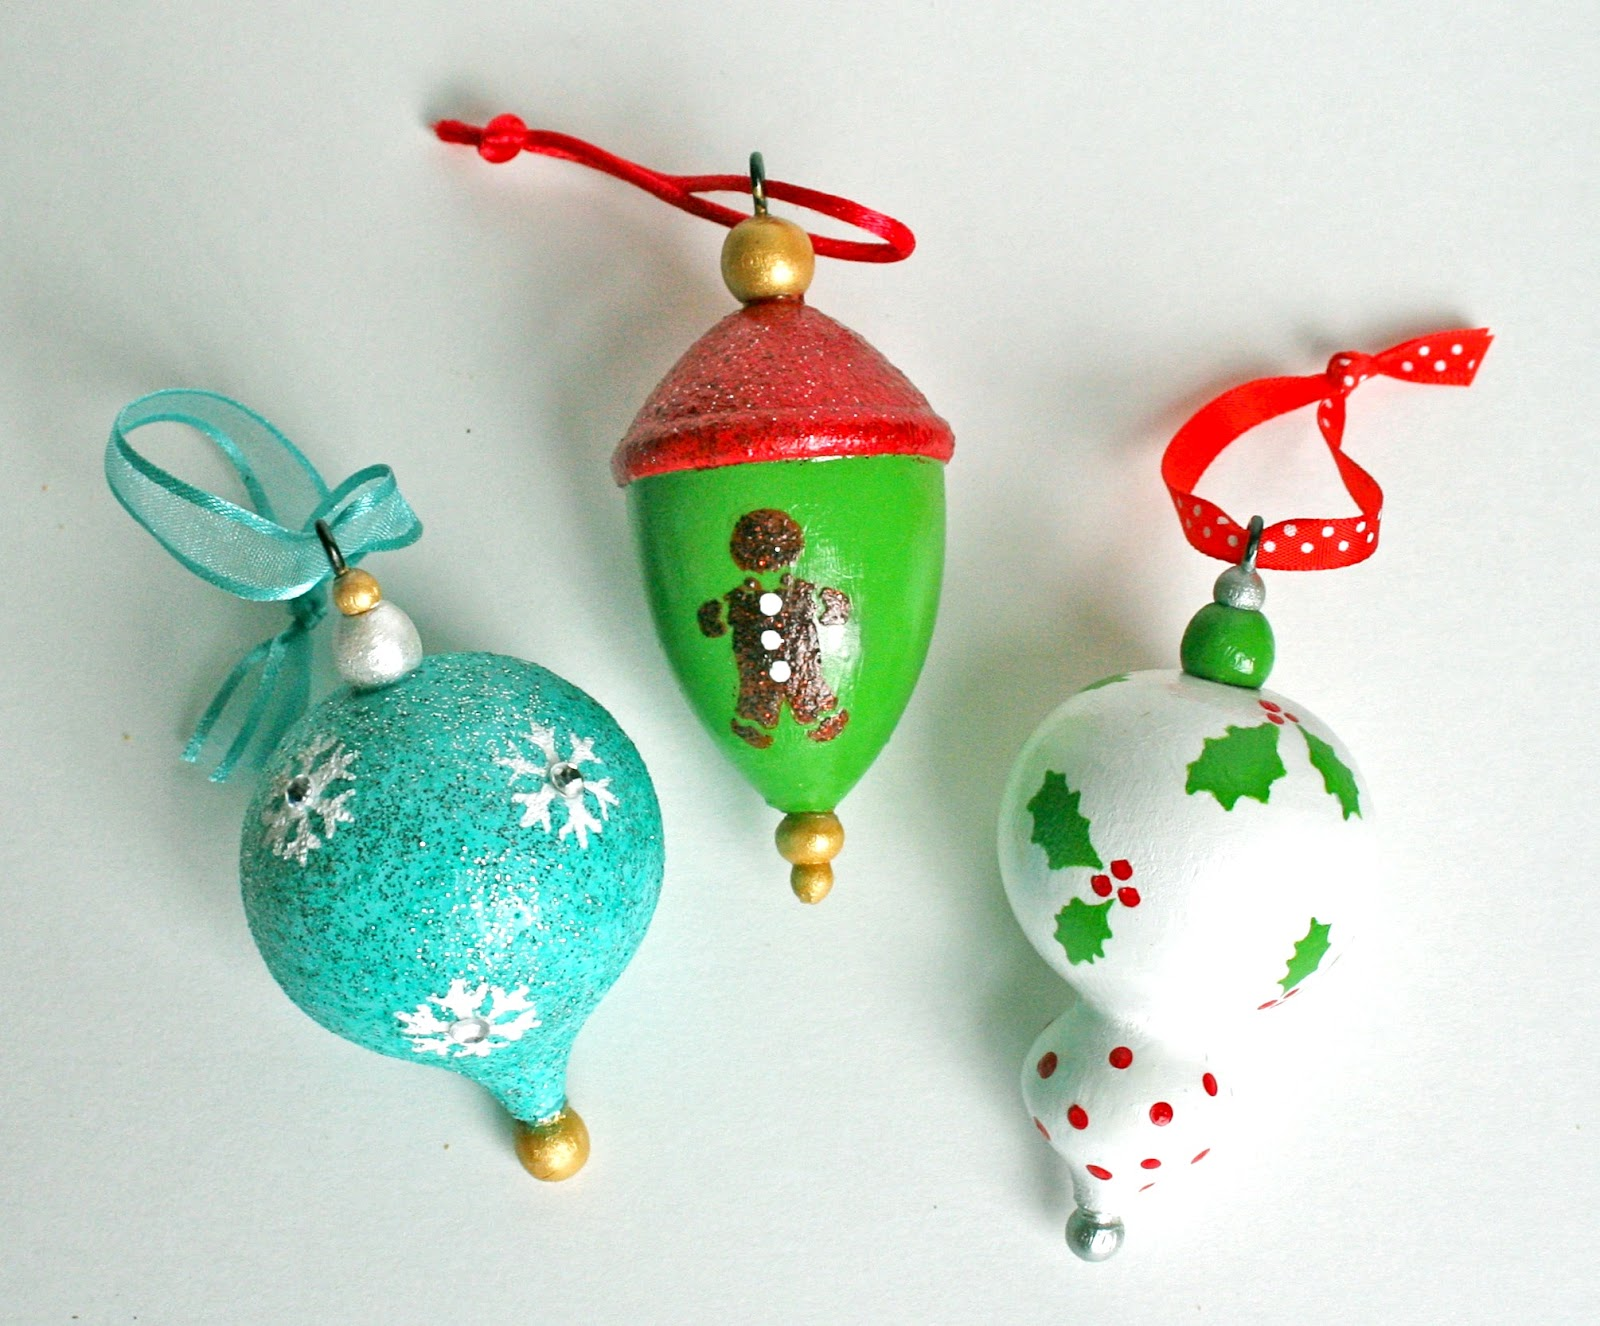 Martha stewart crafts painted ornaments mod podge rocks for Martha stewart xmas crafts